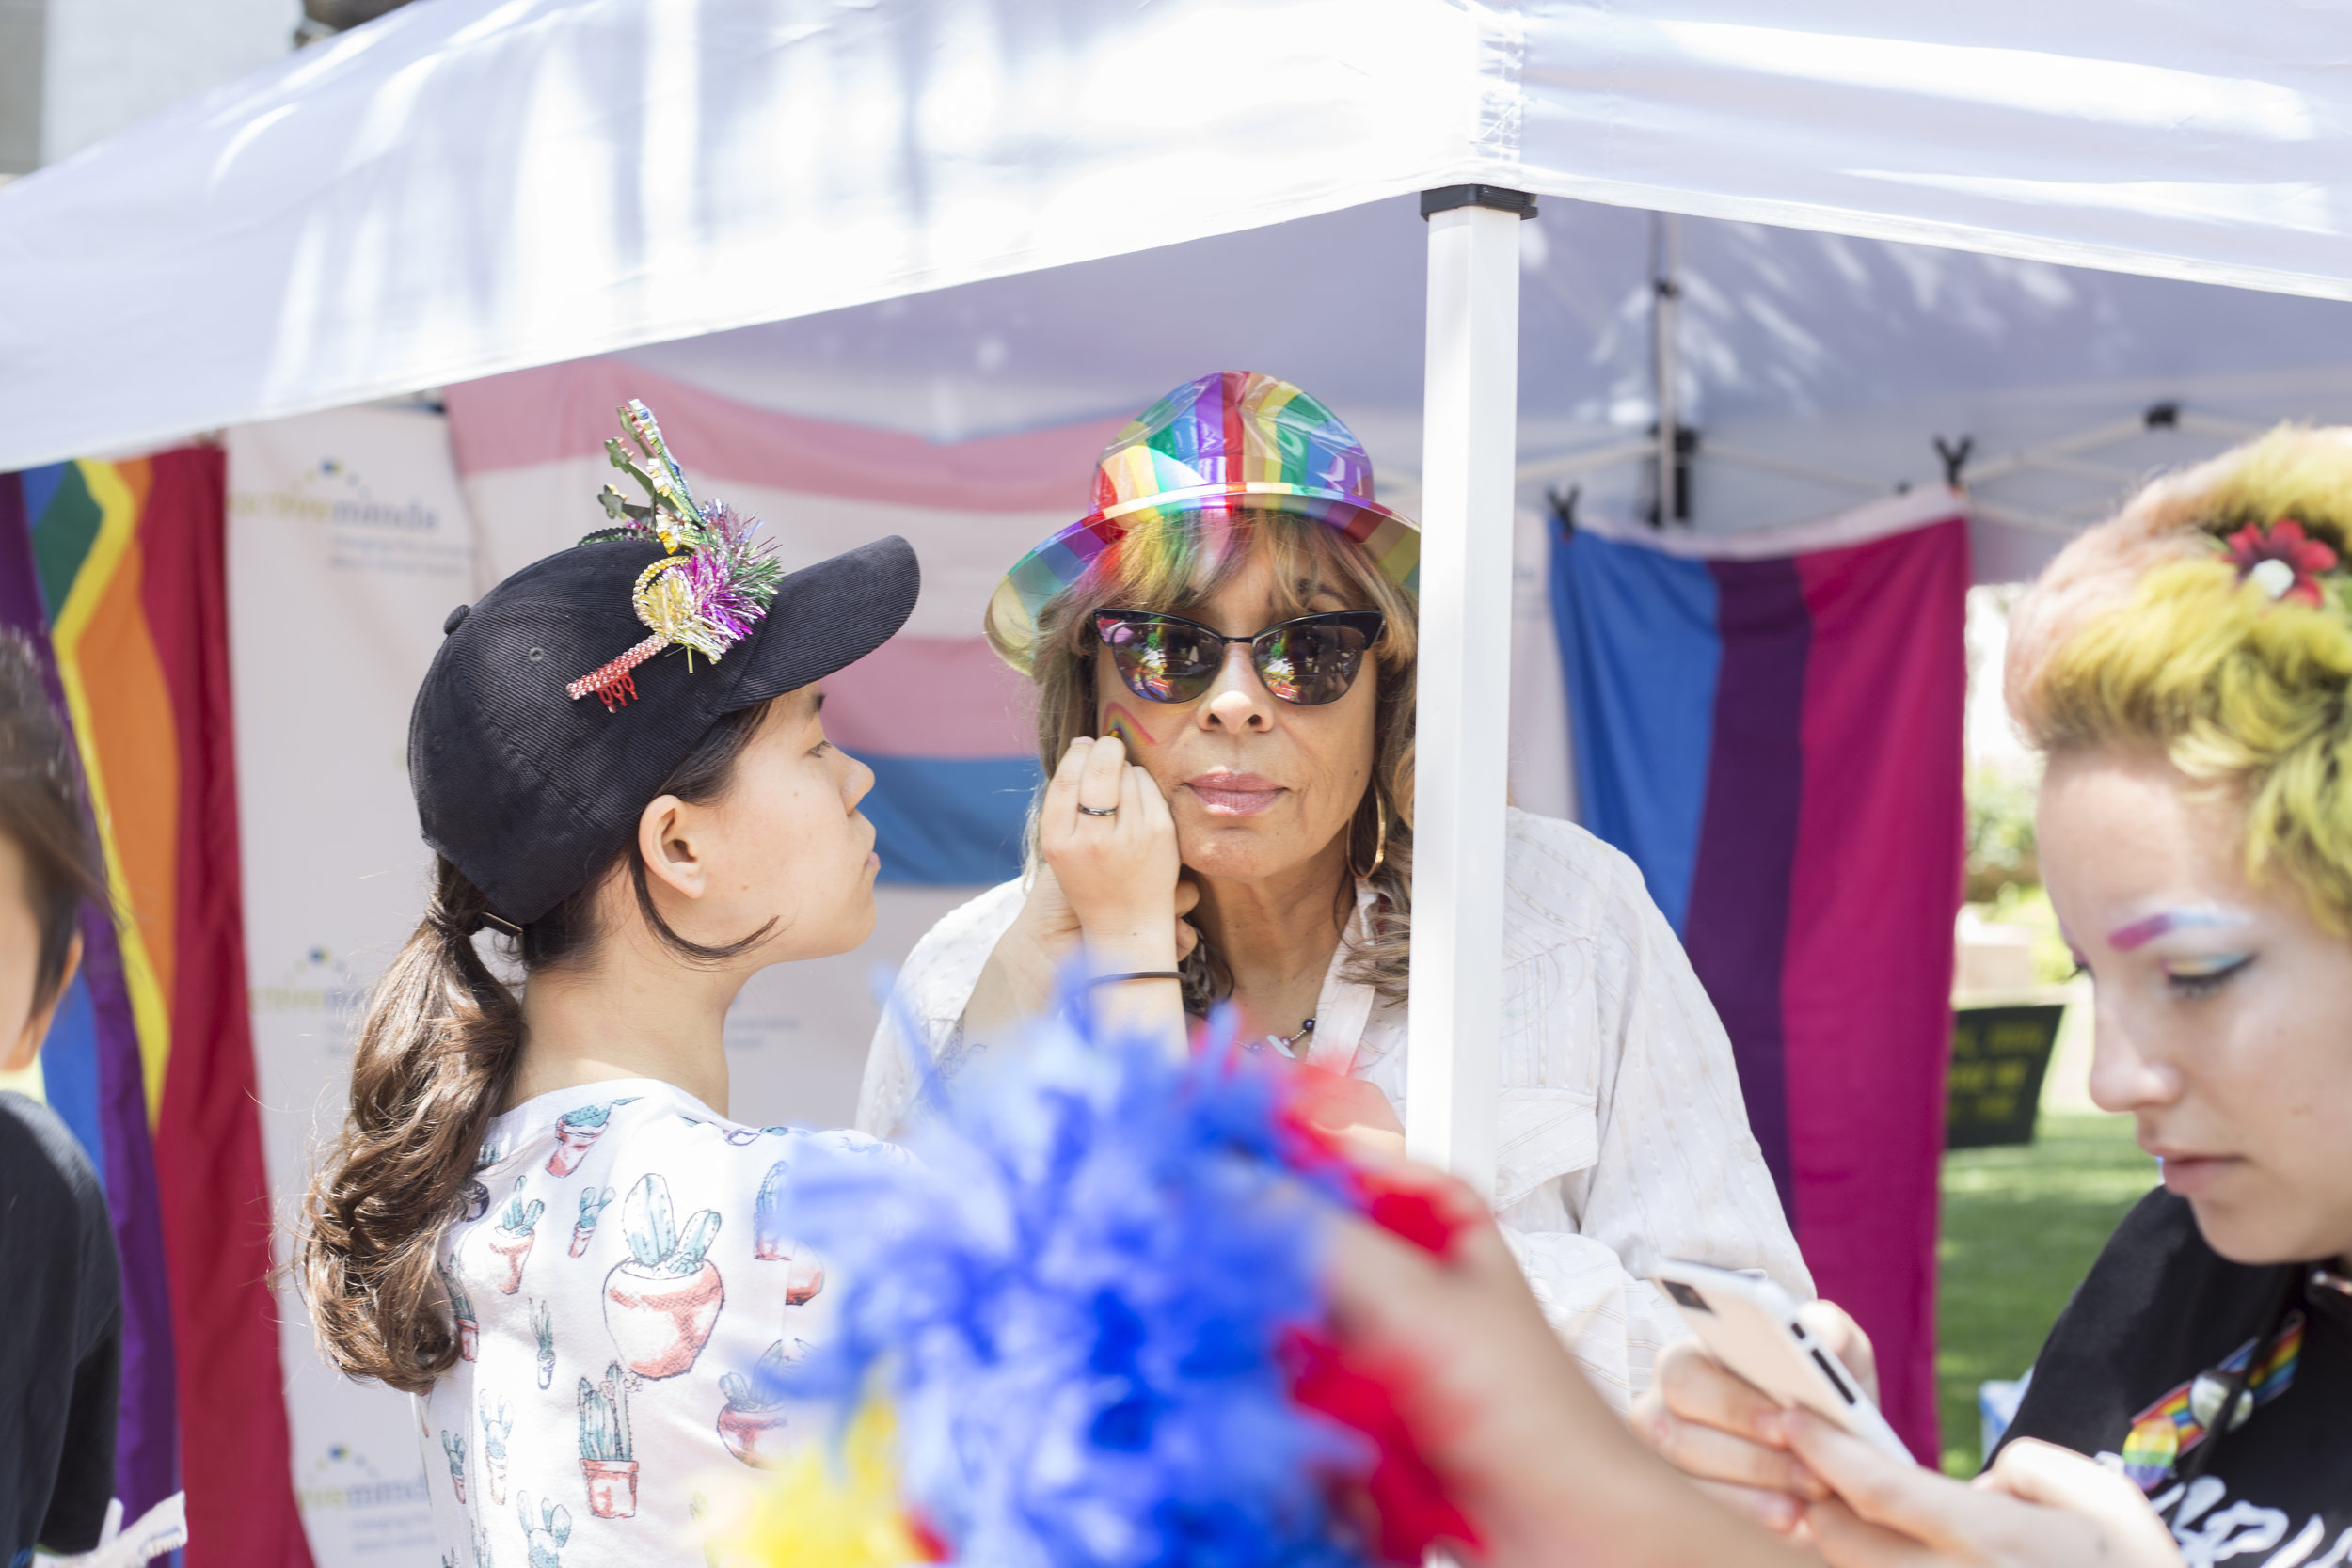 Santa Monica College (SMC) pride week event. All of the spirit: Michele Harrison from Student Life getting her face painted. SMC main campus, Santa Monica, California. Tuesday May 15, 2018. (Fernanda Rivera, Corsair Photo)